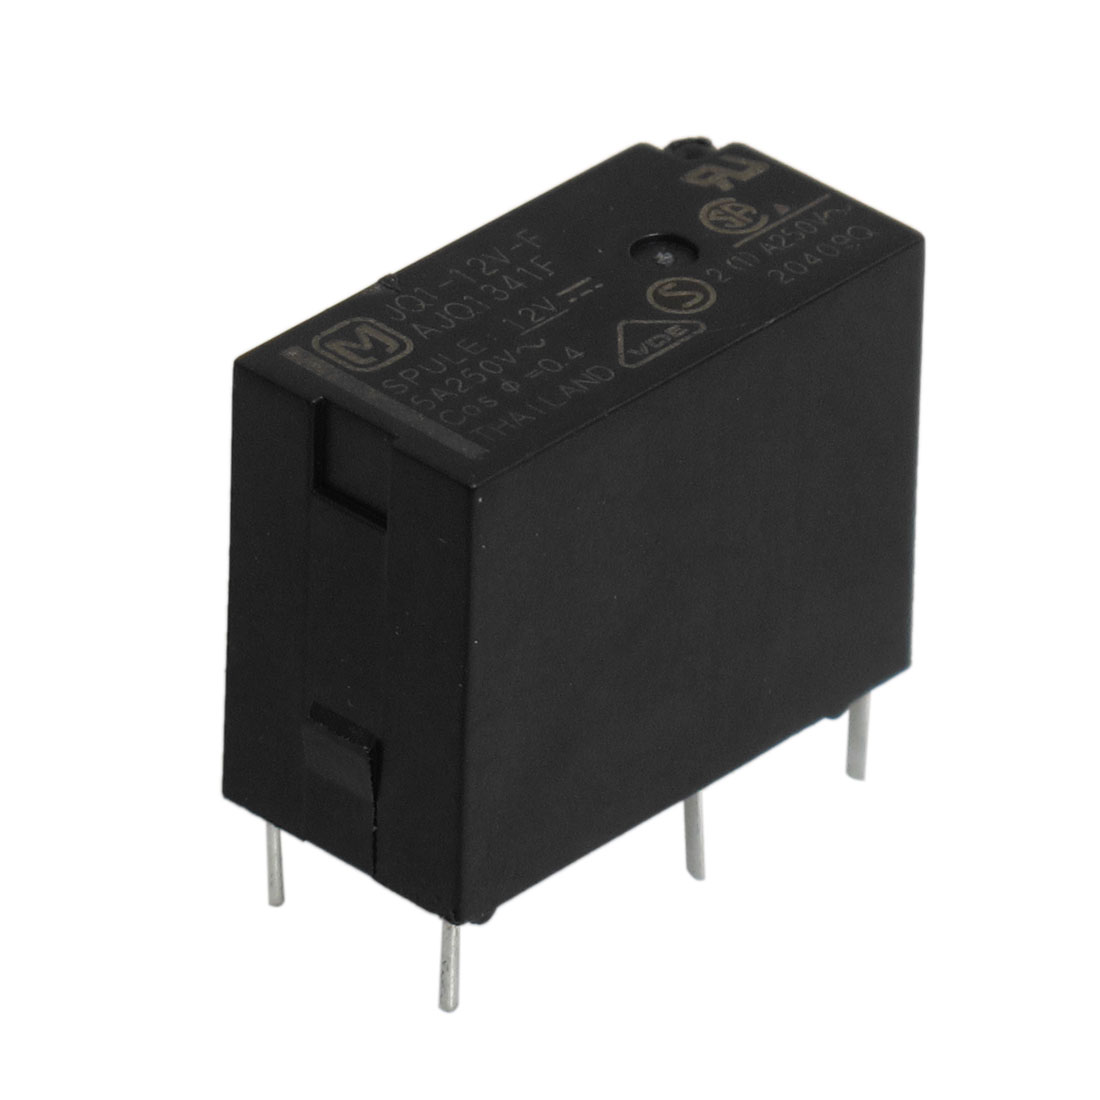 DC 12V Coil Voltage 5 Pins SPDT General Purpose Power Relay Black